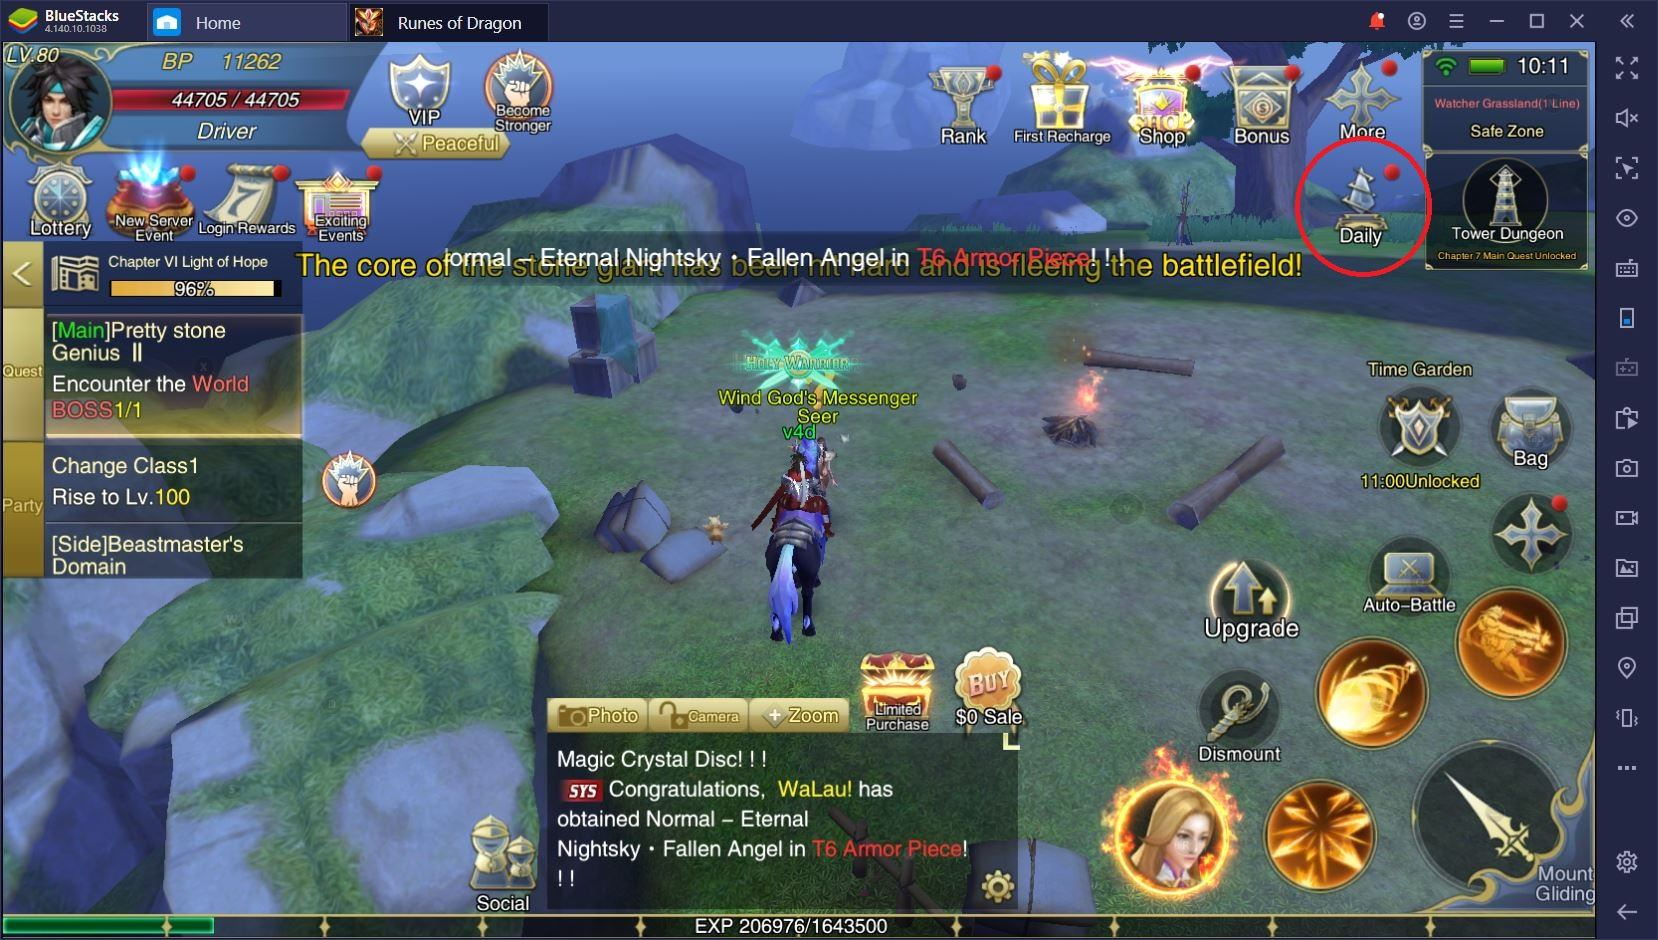 Runes of Dragon on PC: How to Choose Your Class and Level Up Quickly